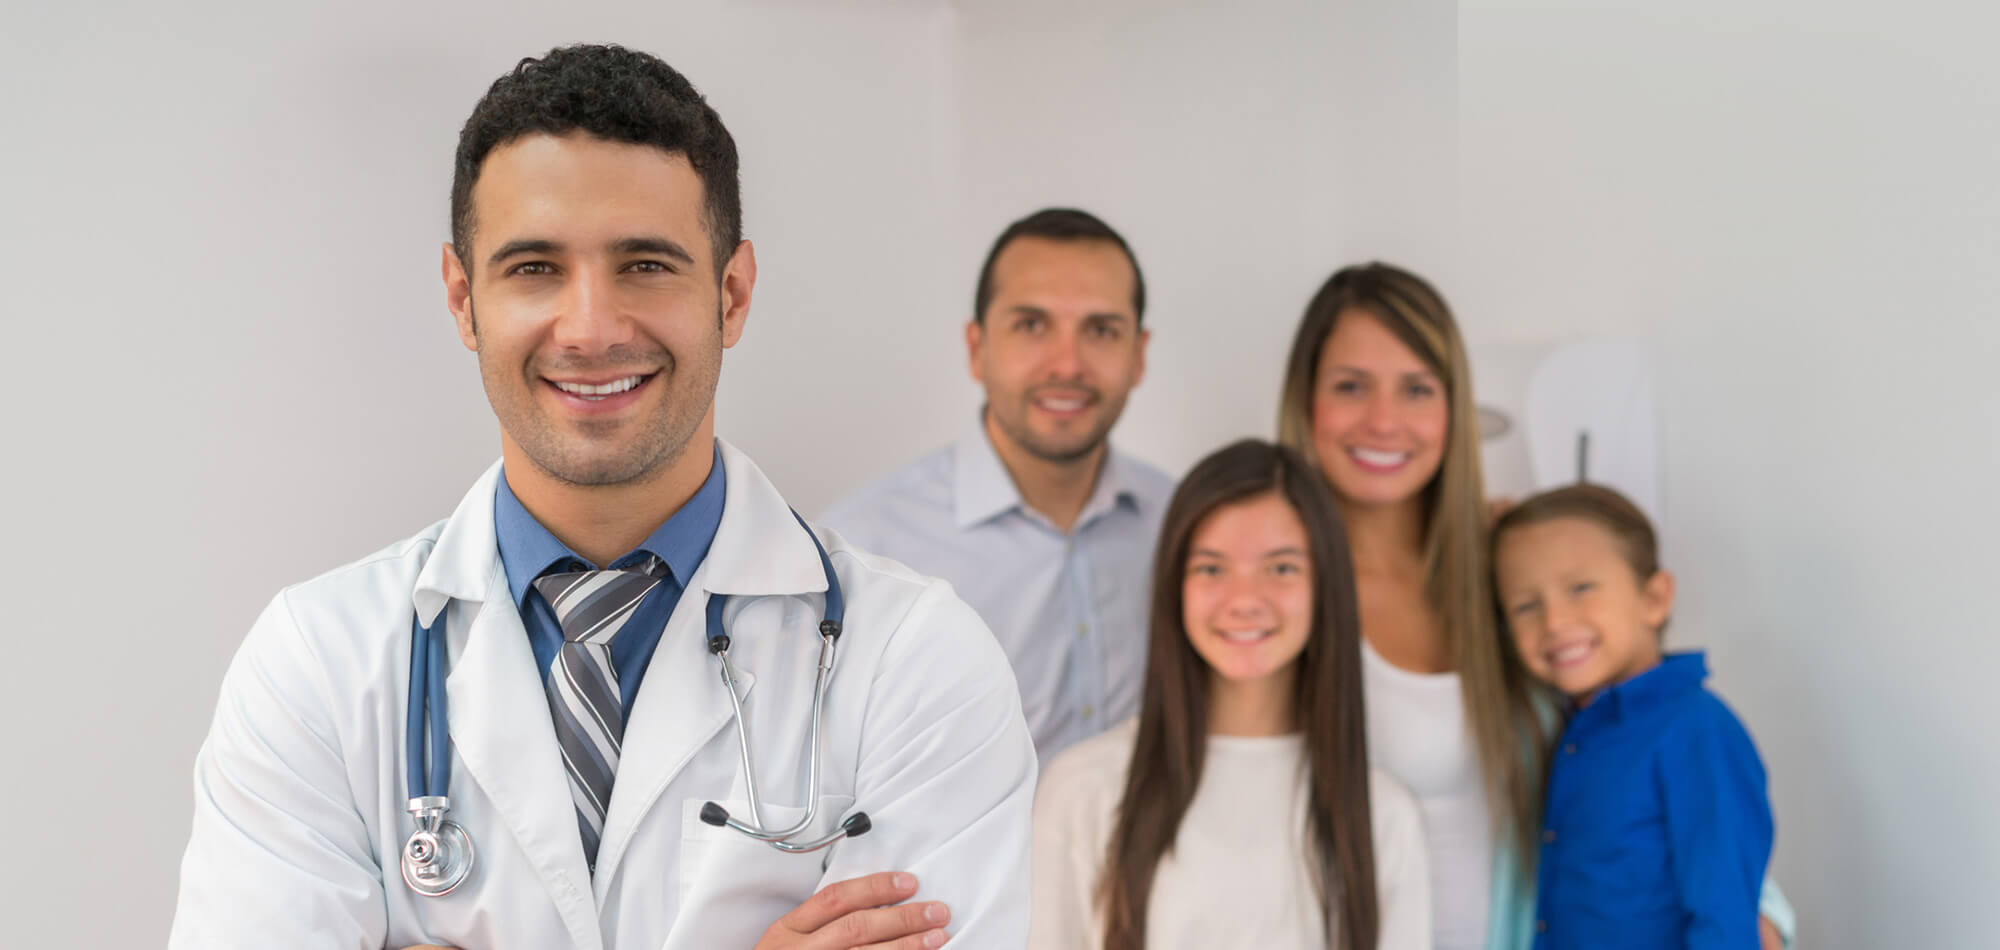 Doctors Near You | Family Practice Center, PC | Doctors in Central PA